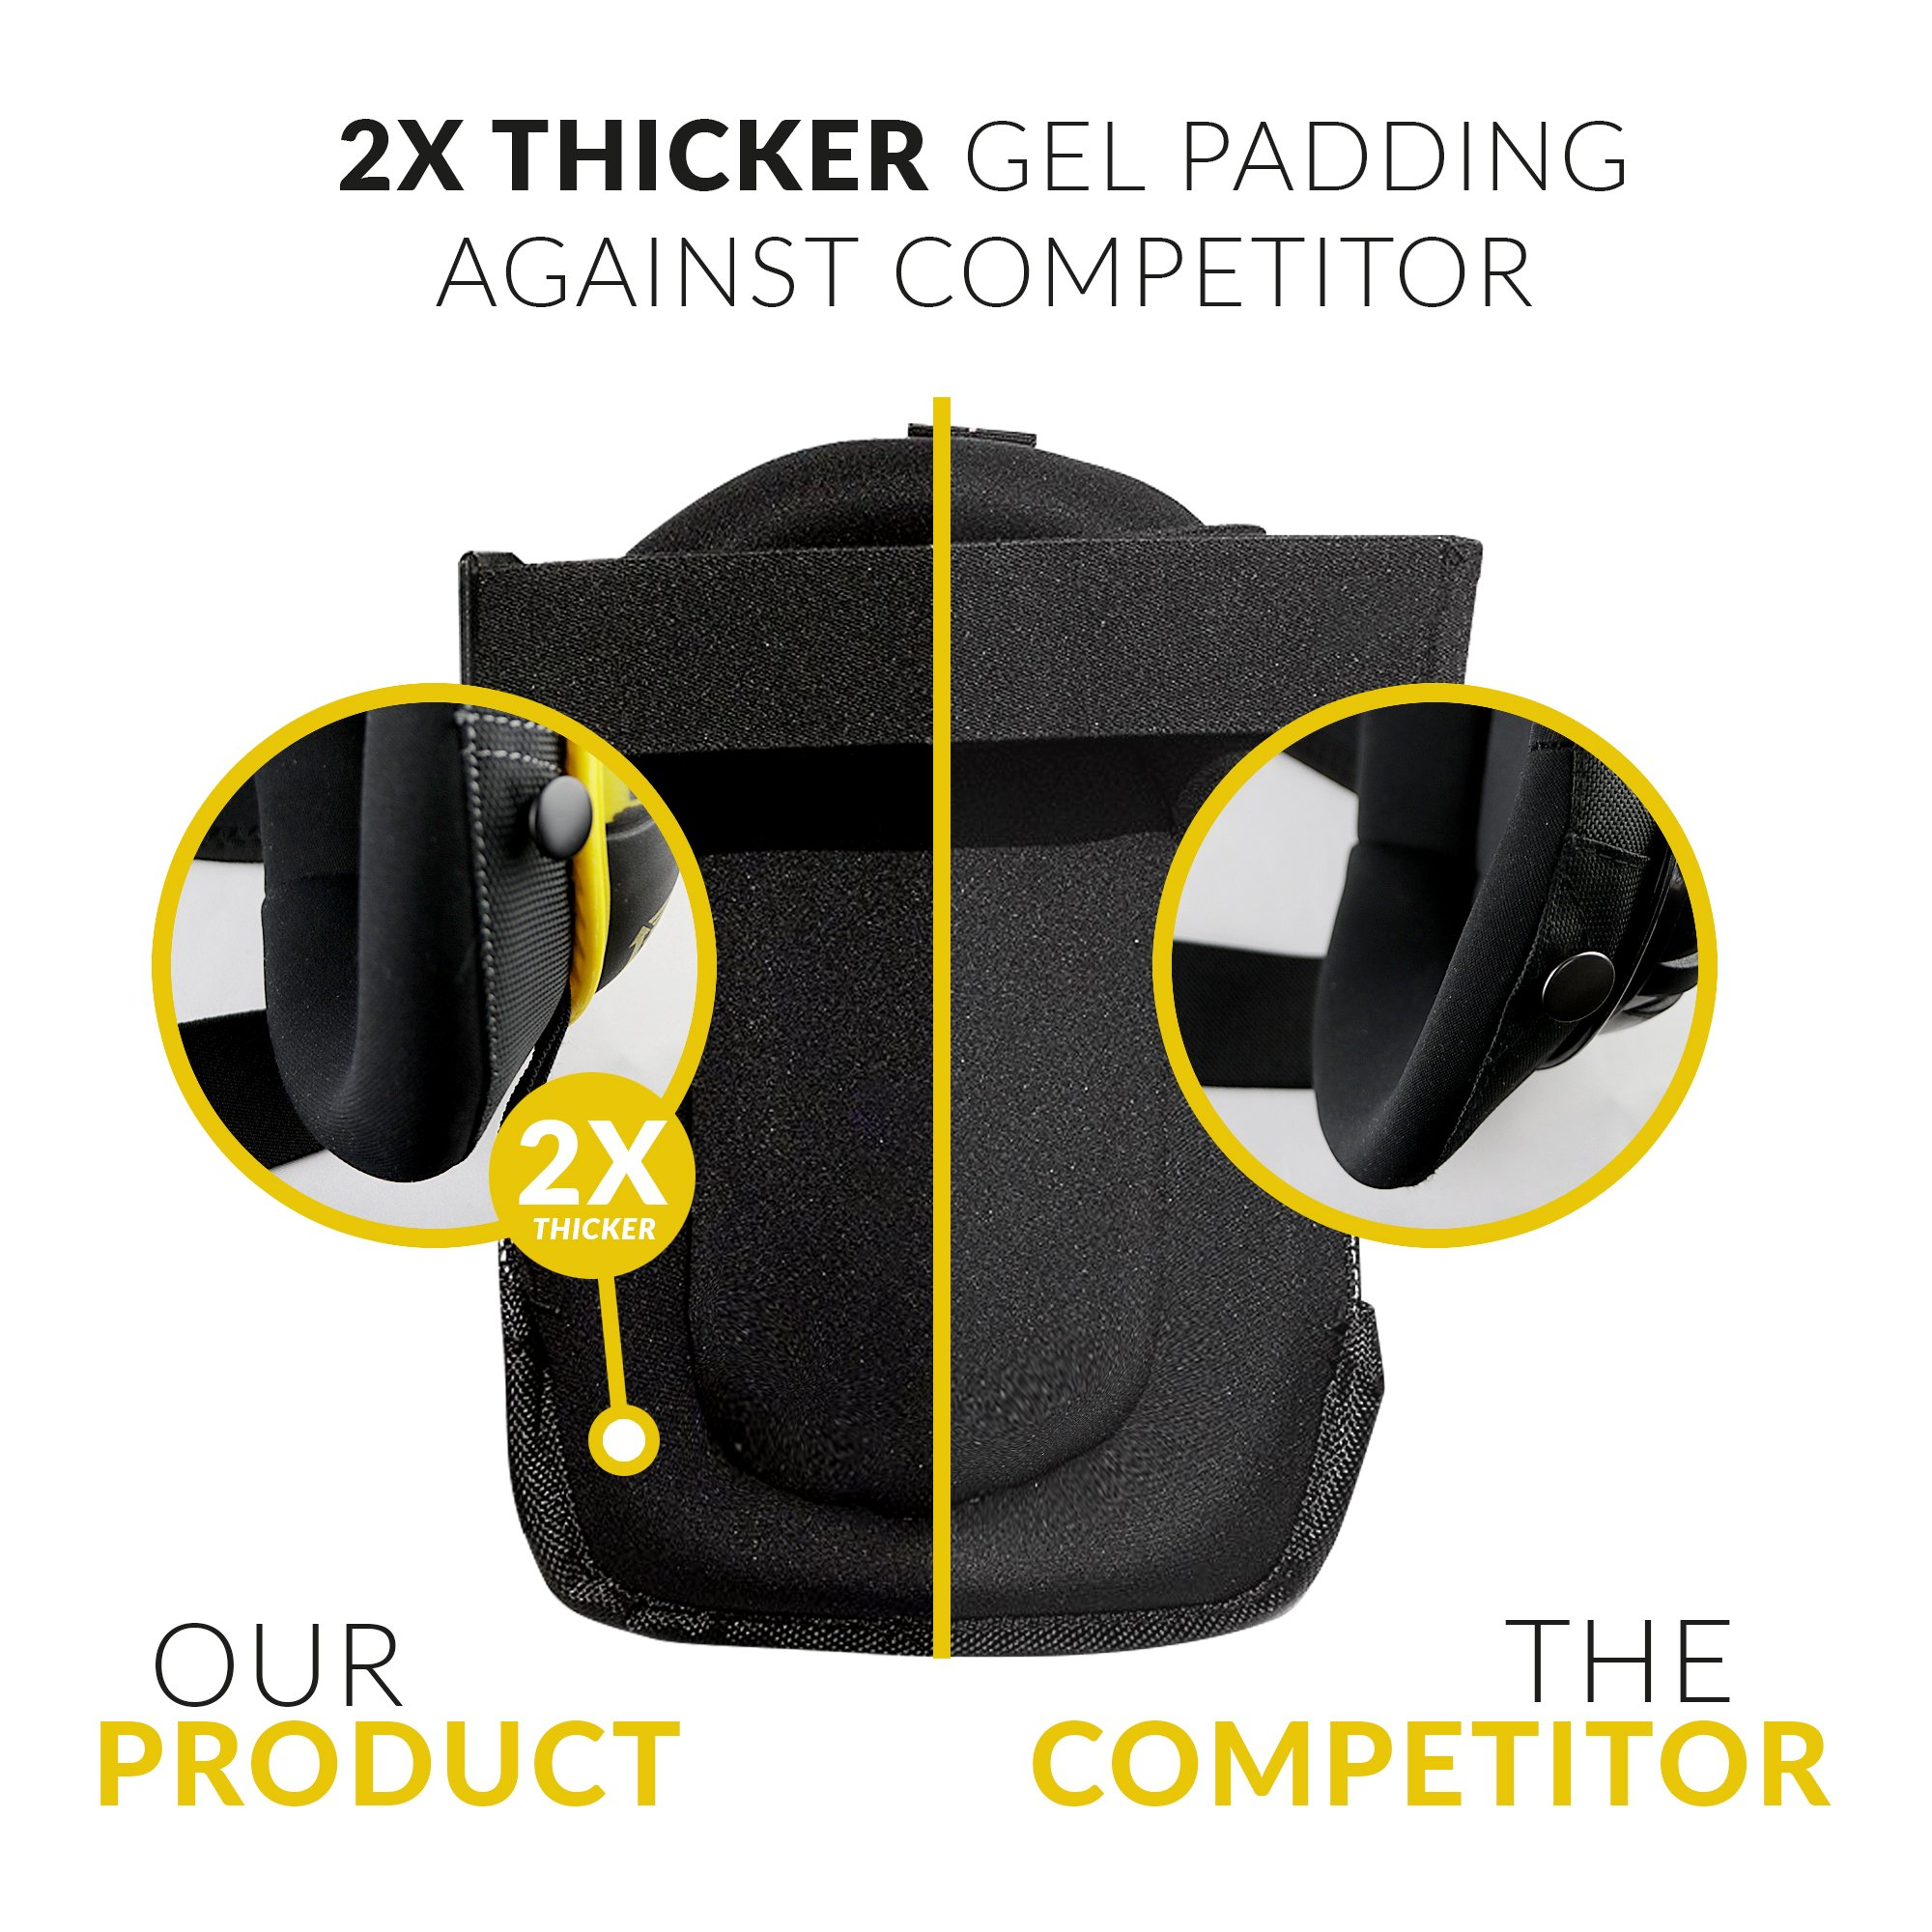 HEAVY DUTY CONSTRUCTION KNEE PADS - Thick Foam + Gel Pad for Extra Comfort | Durable Reinforced Stitching | Non-Slip & Adjustable For Cleaning, Yard, Flooring, Professional Work | Includes Mesh Bag by Epifany Products (Image #2)